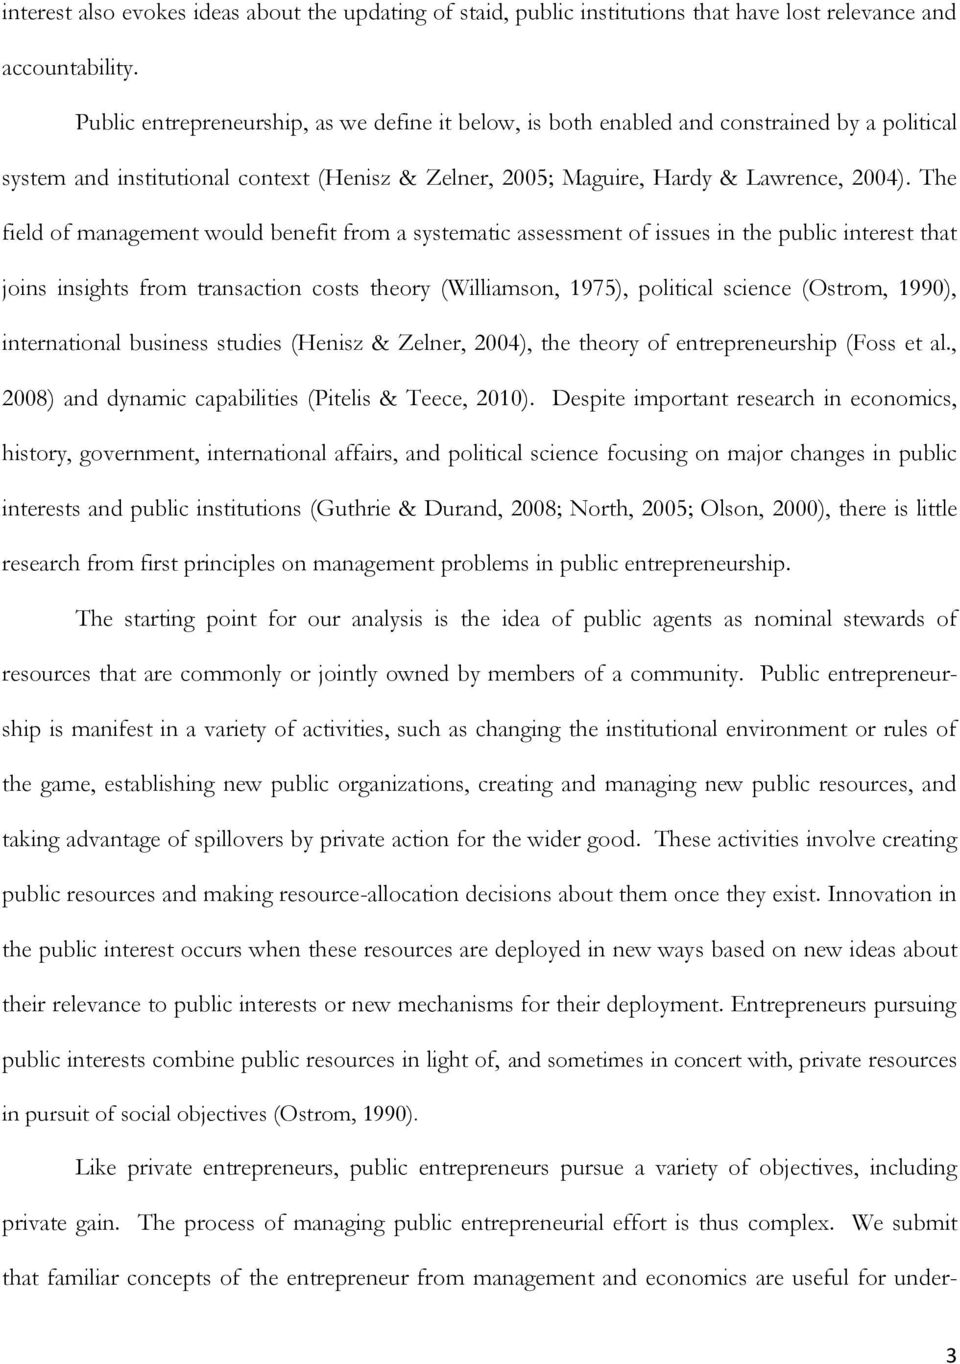 The field of management would benefit from a systematic assessment of issues in the public interest that joins insights from transaction costs theory (Williamson, 1975), political science (Ostrom,